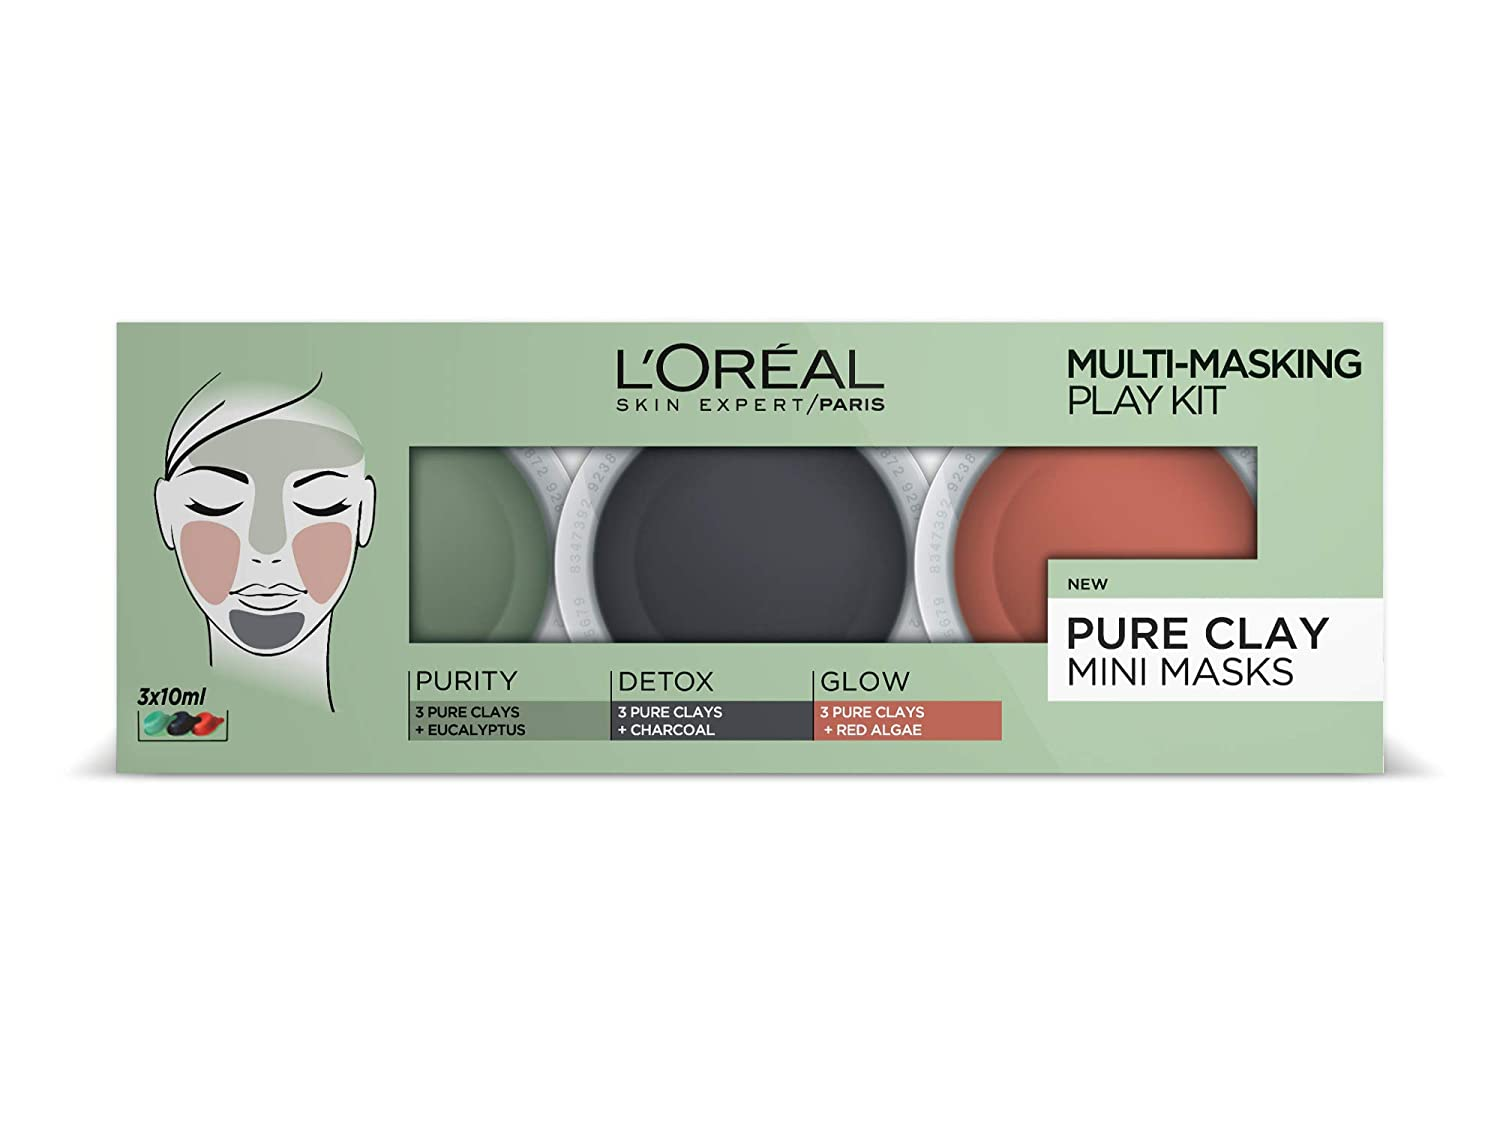 L'Oreal Paris Pure Clay Multi Masking Play Kit